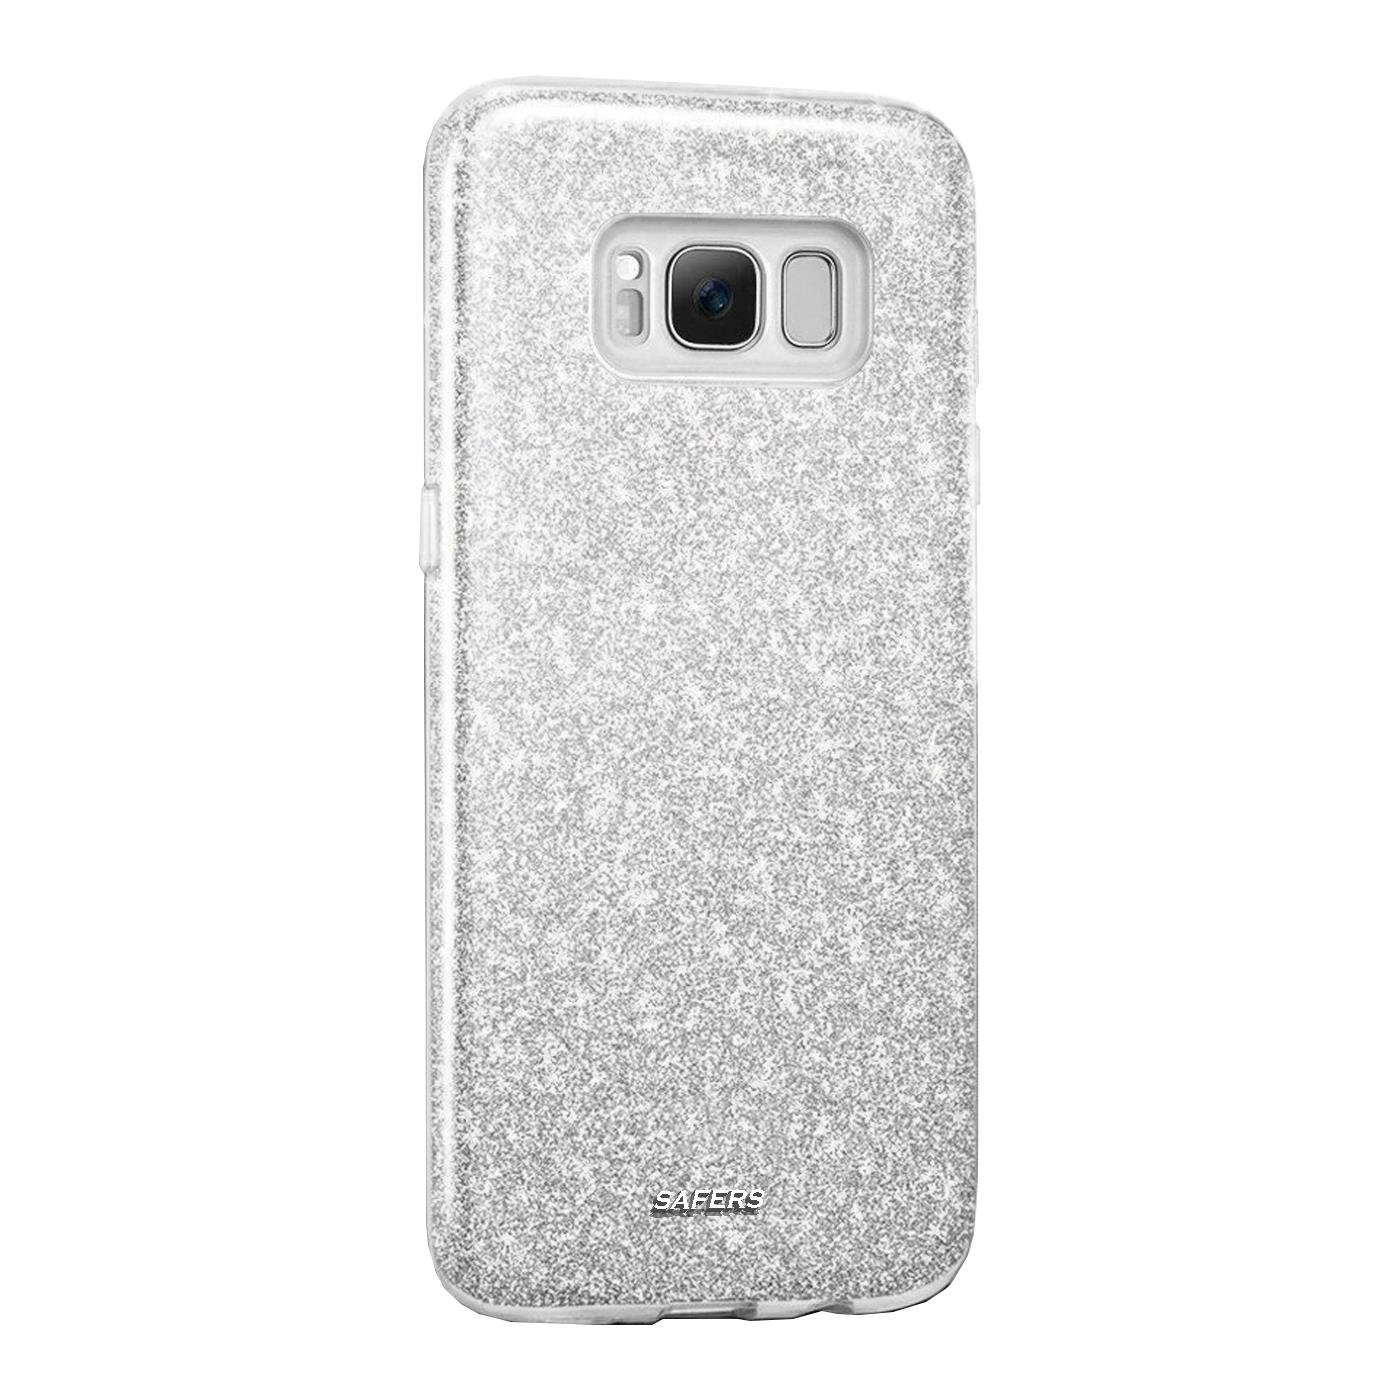 Phone-Glitter-Case-for-Samsung-Galaxy-Slim-TPU-Cover-Silicone-Protective thumbnail 19